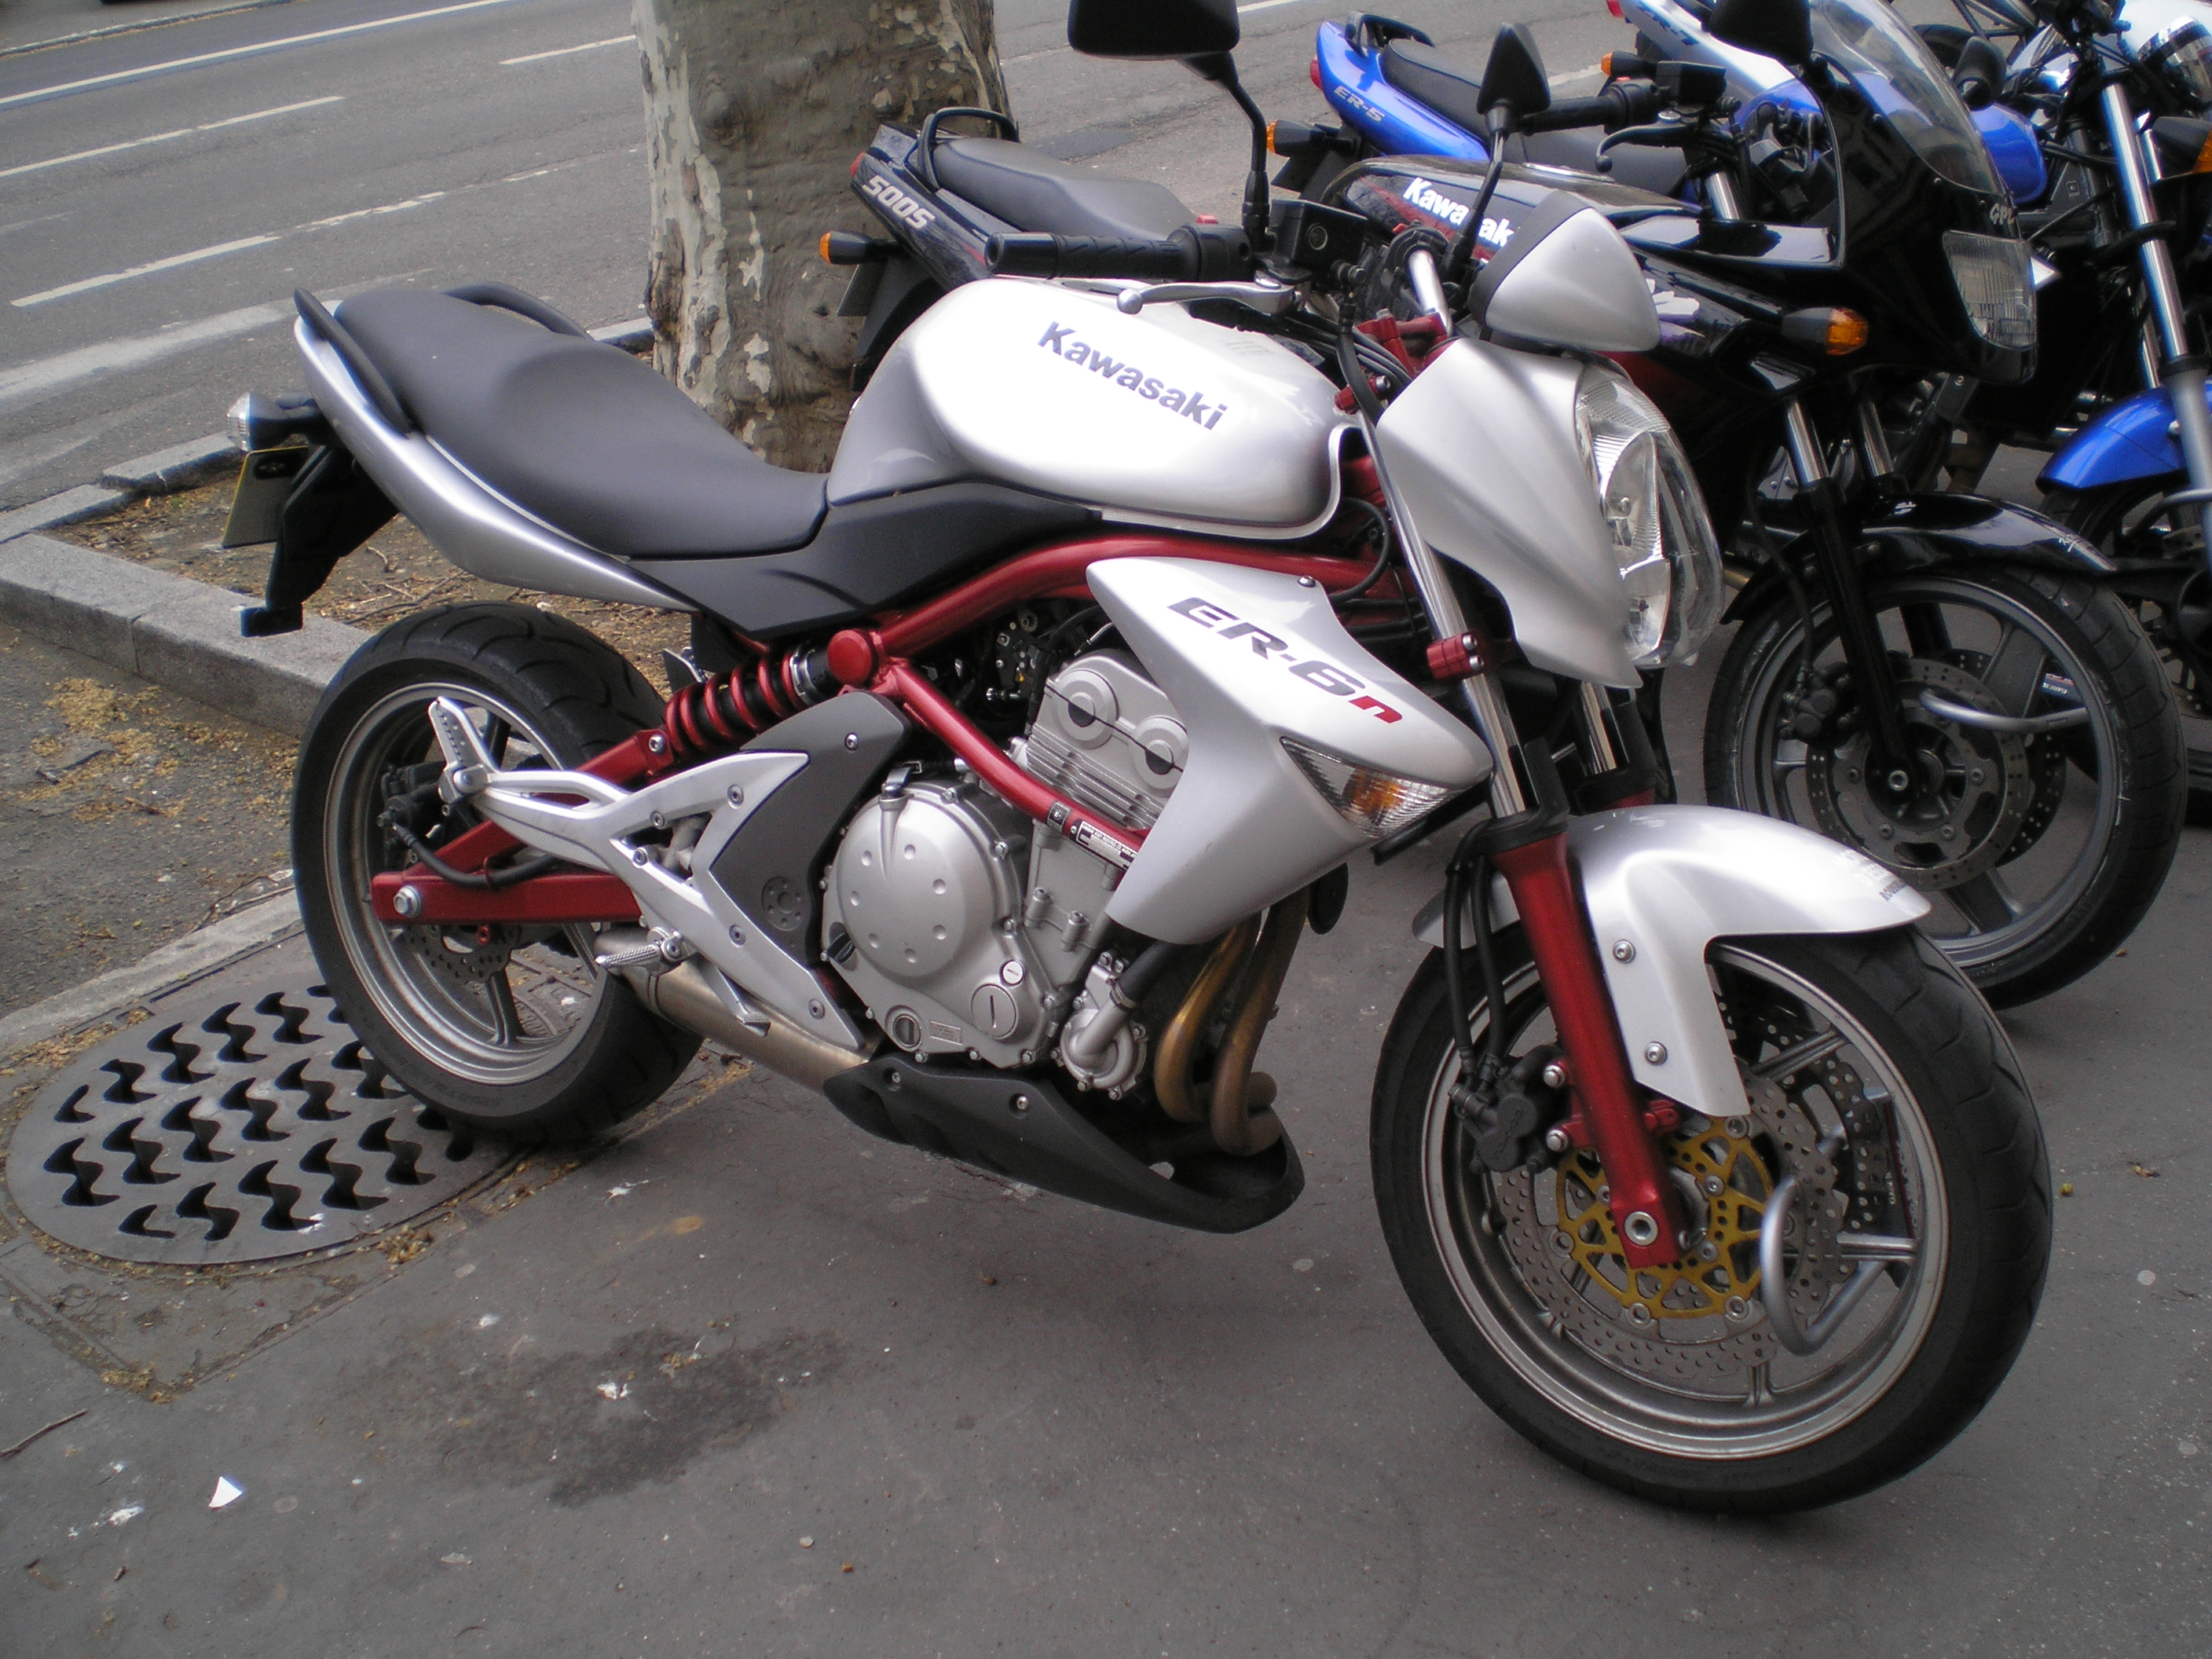 Kawasaki Ern Abs For Sale